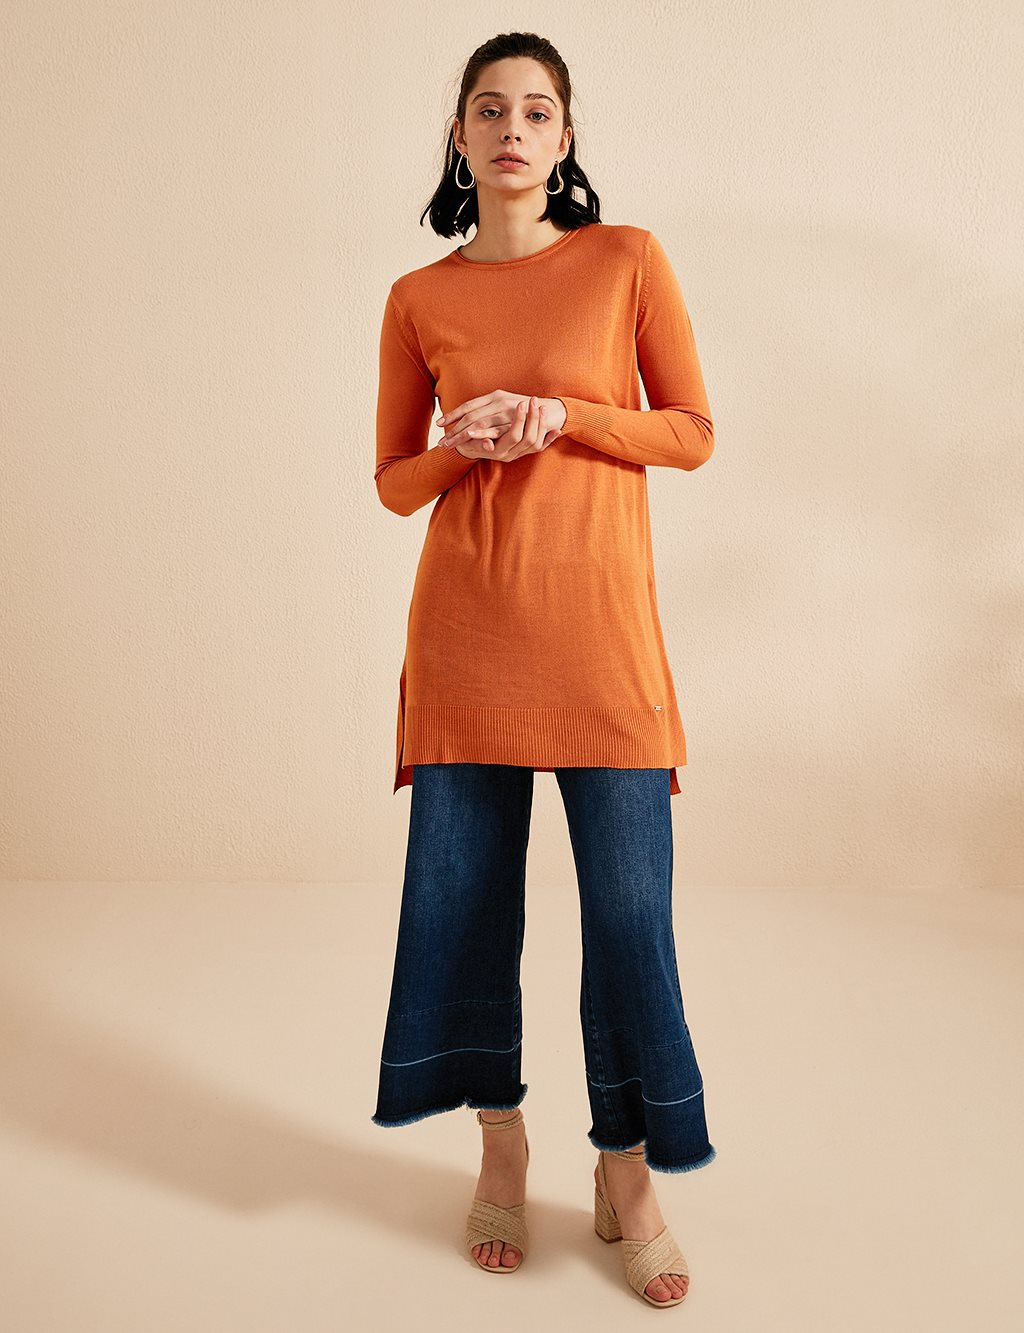 Wide Collar Knitwear Tunic B20 TRK14 Orange